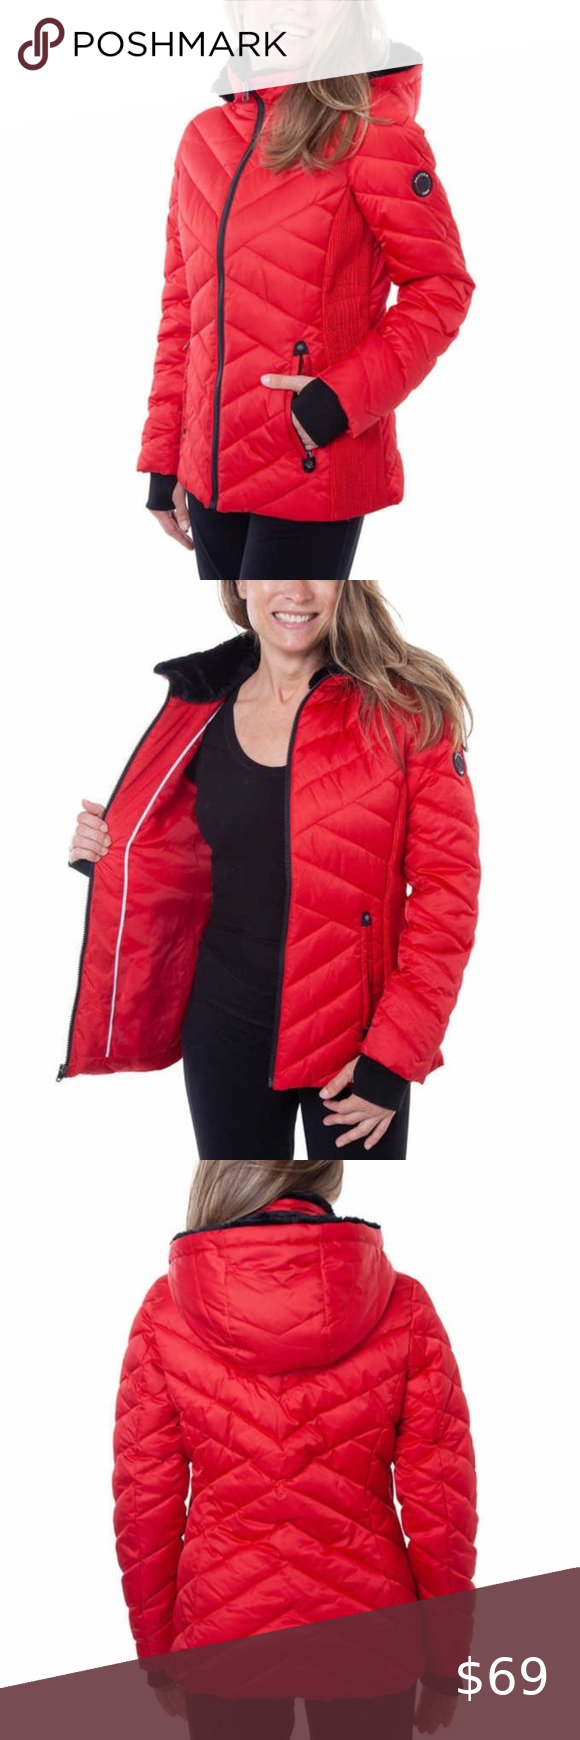 Nautica Ladies Puffer Jacket Color Red Puffer Jacket Women Women S Puffer Coats Jackets Women [ 1740 x 580 Pixel ]